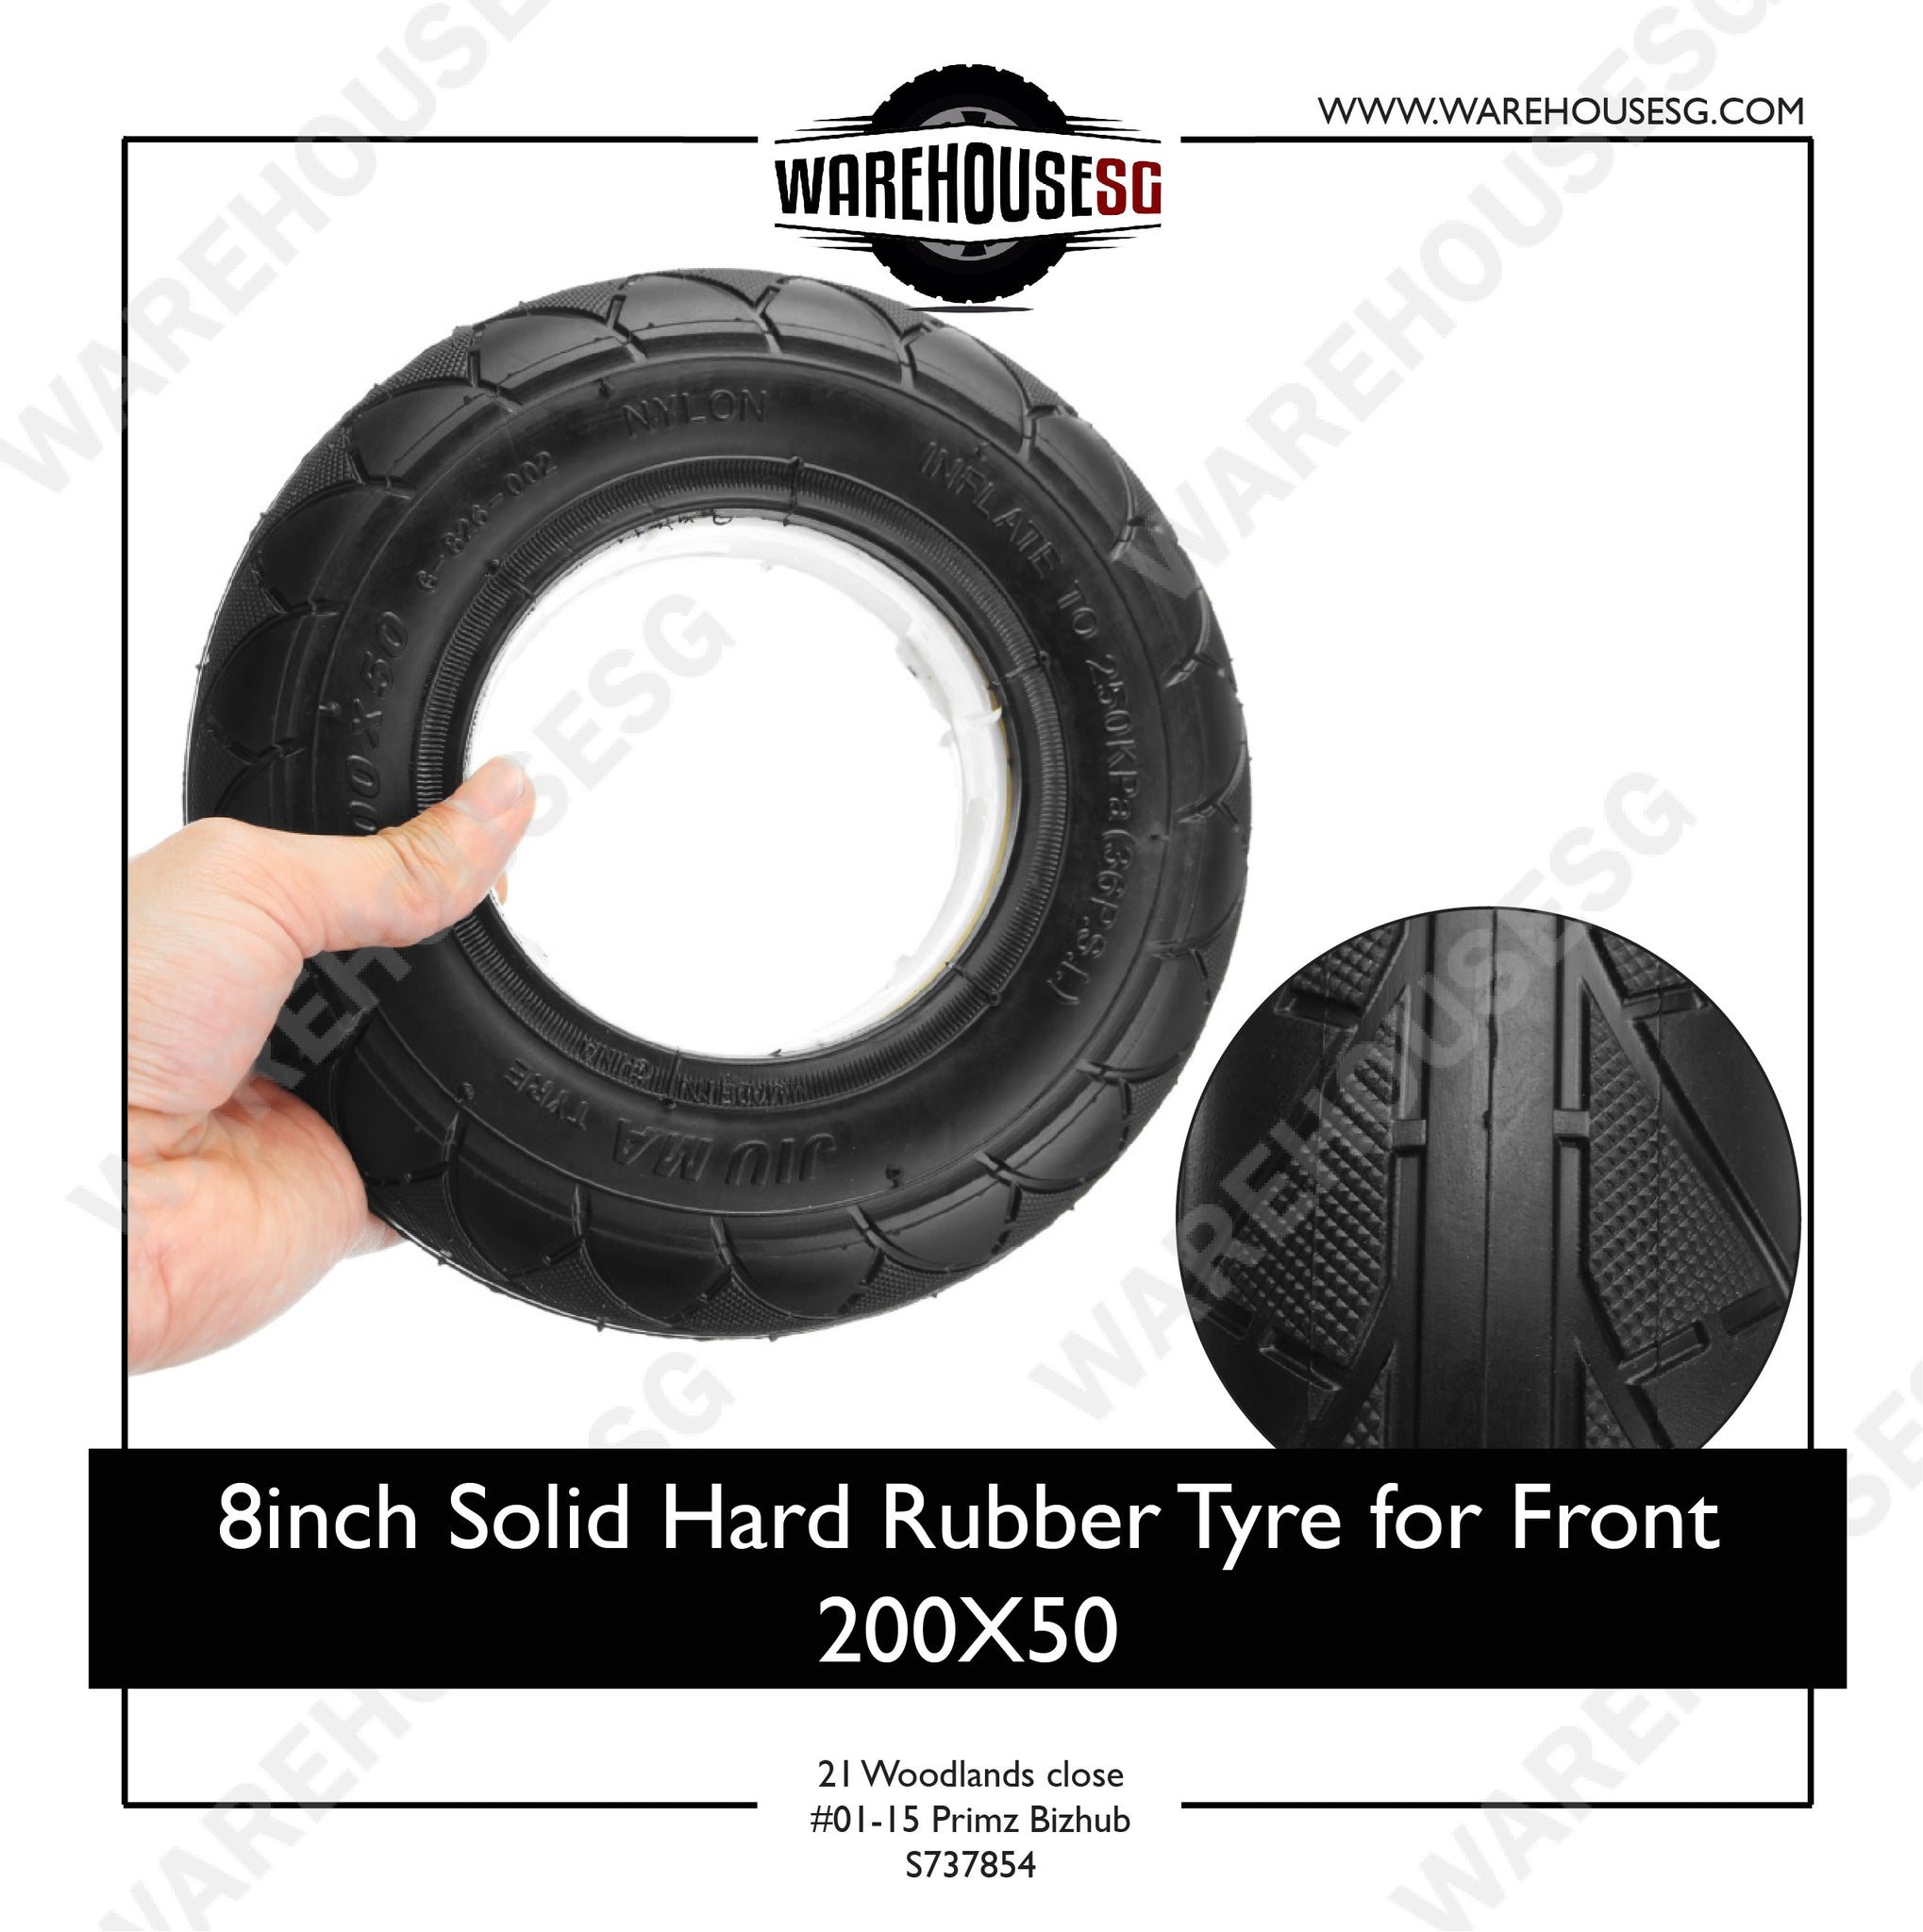 8inch Solid Hard Rubber Tyre for Front 200X50